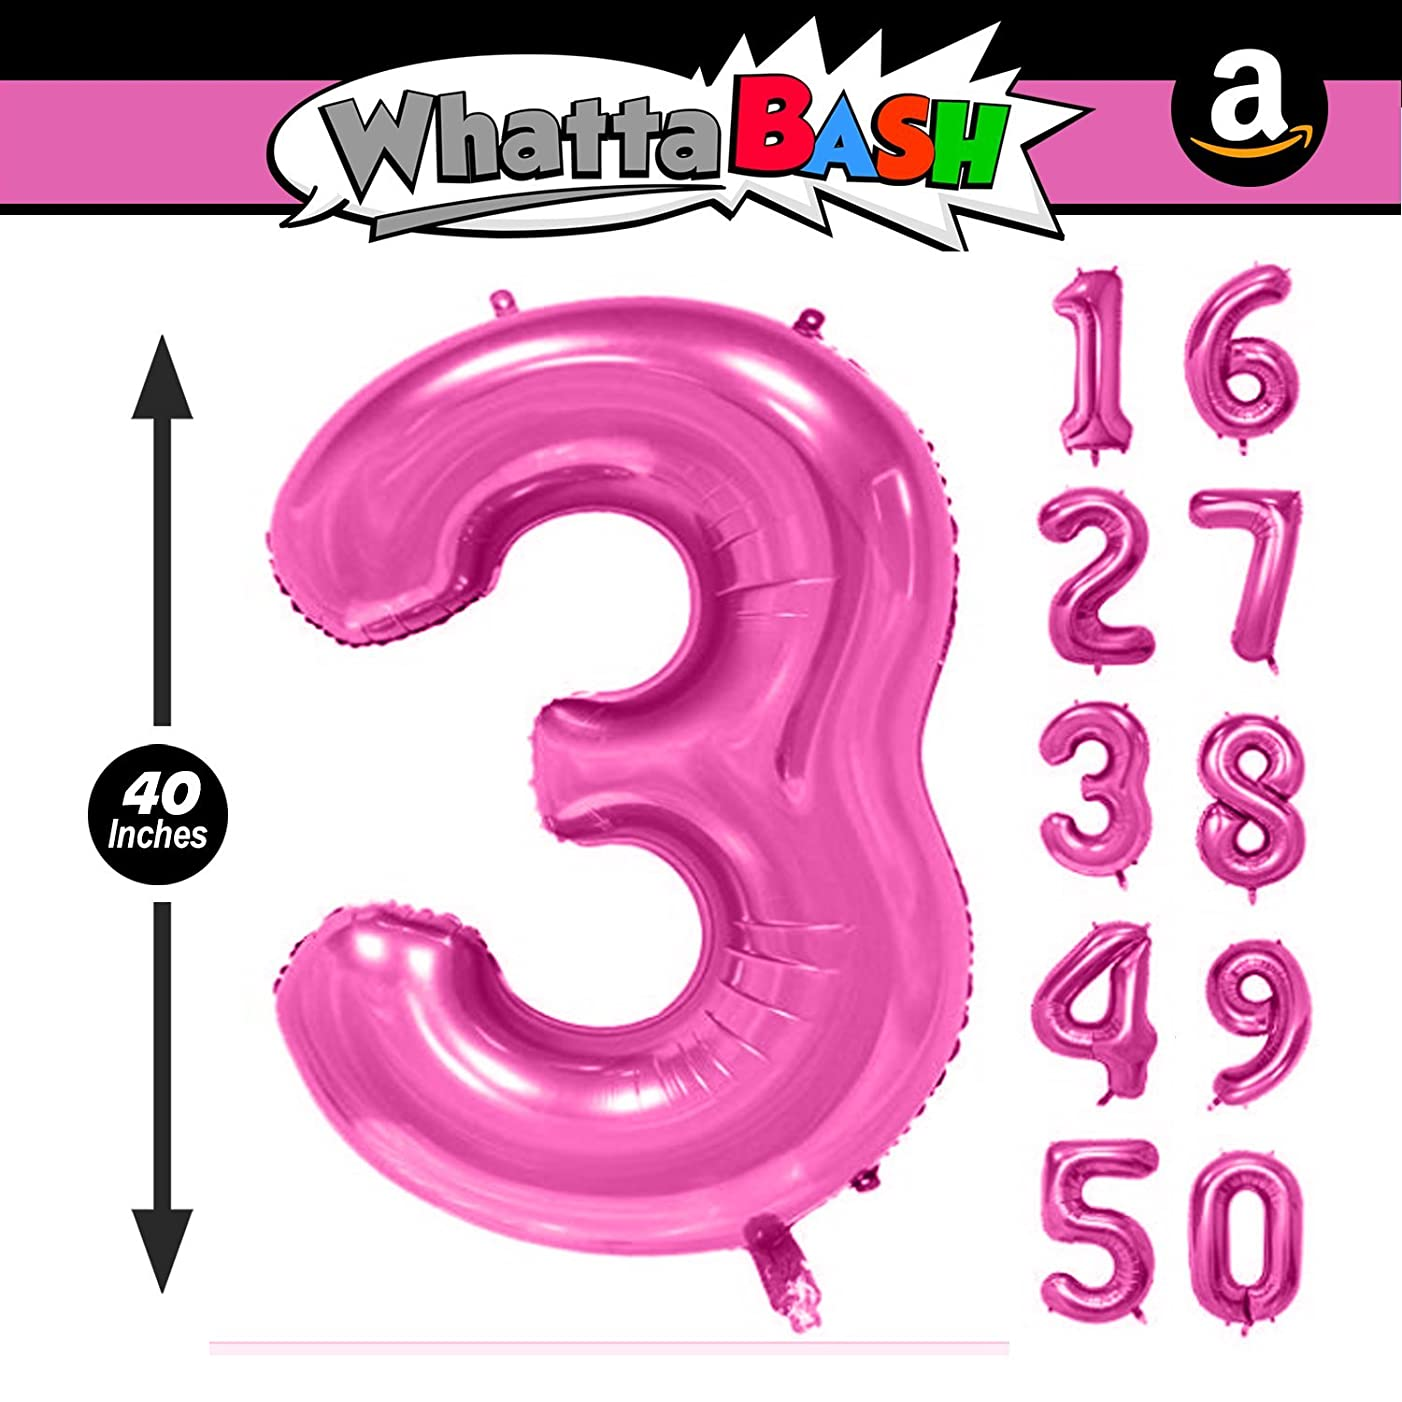 40 Inch Pink Jumbo Number 3 Three Balloon - Giant Large Balloons Foil Decorations Supplies For Birthday Party Wedding Bridal Shower Anniversary Engagement Photo Shoot Gift Accessories (Pink, Number 3)